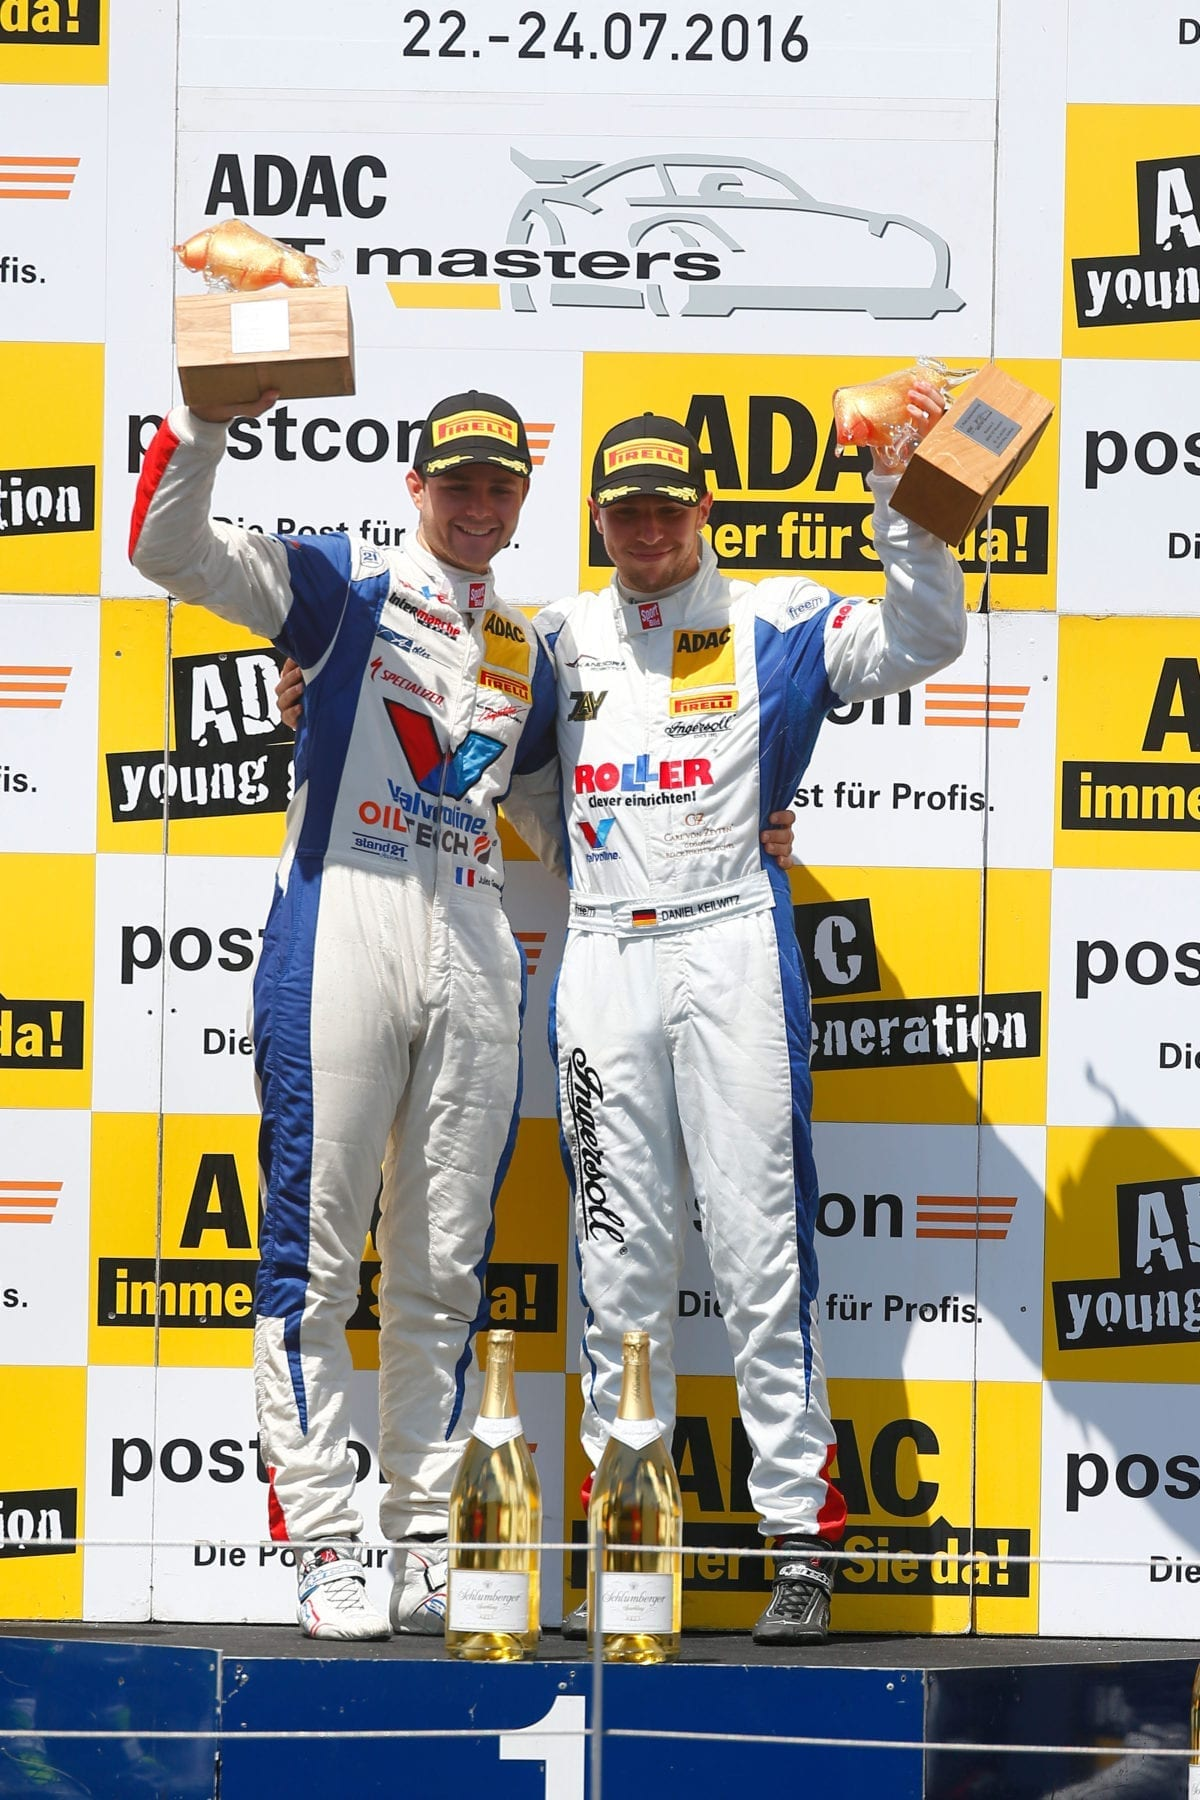 ADAC GT Masters - Red Bull Ring 2016